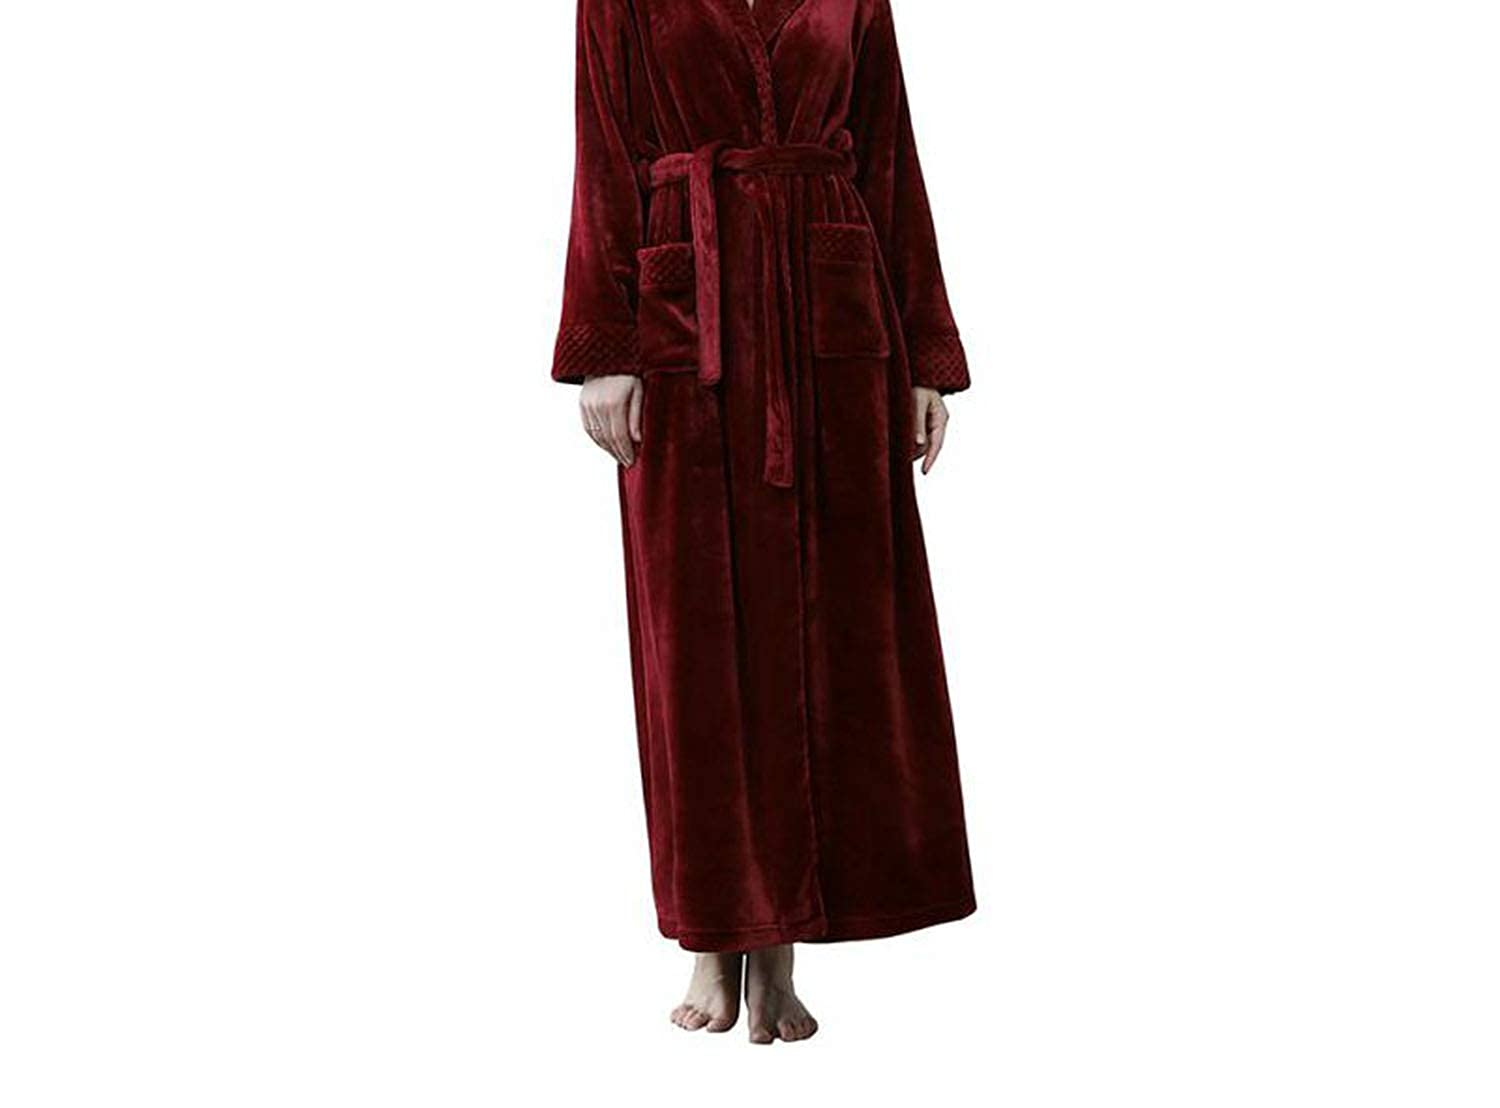 JR Together to create a miracle Woman Cloak AnkleLength Flannel Bathrobe Peigblack Dressing Gowns for Women Winter 2018